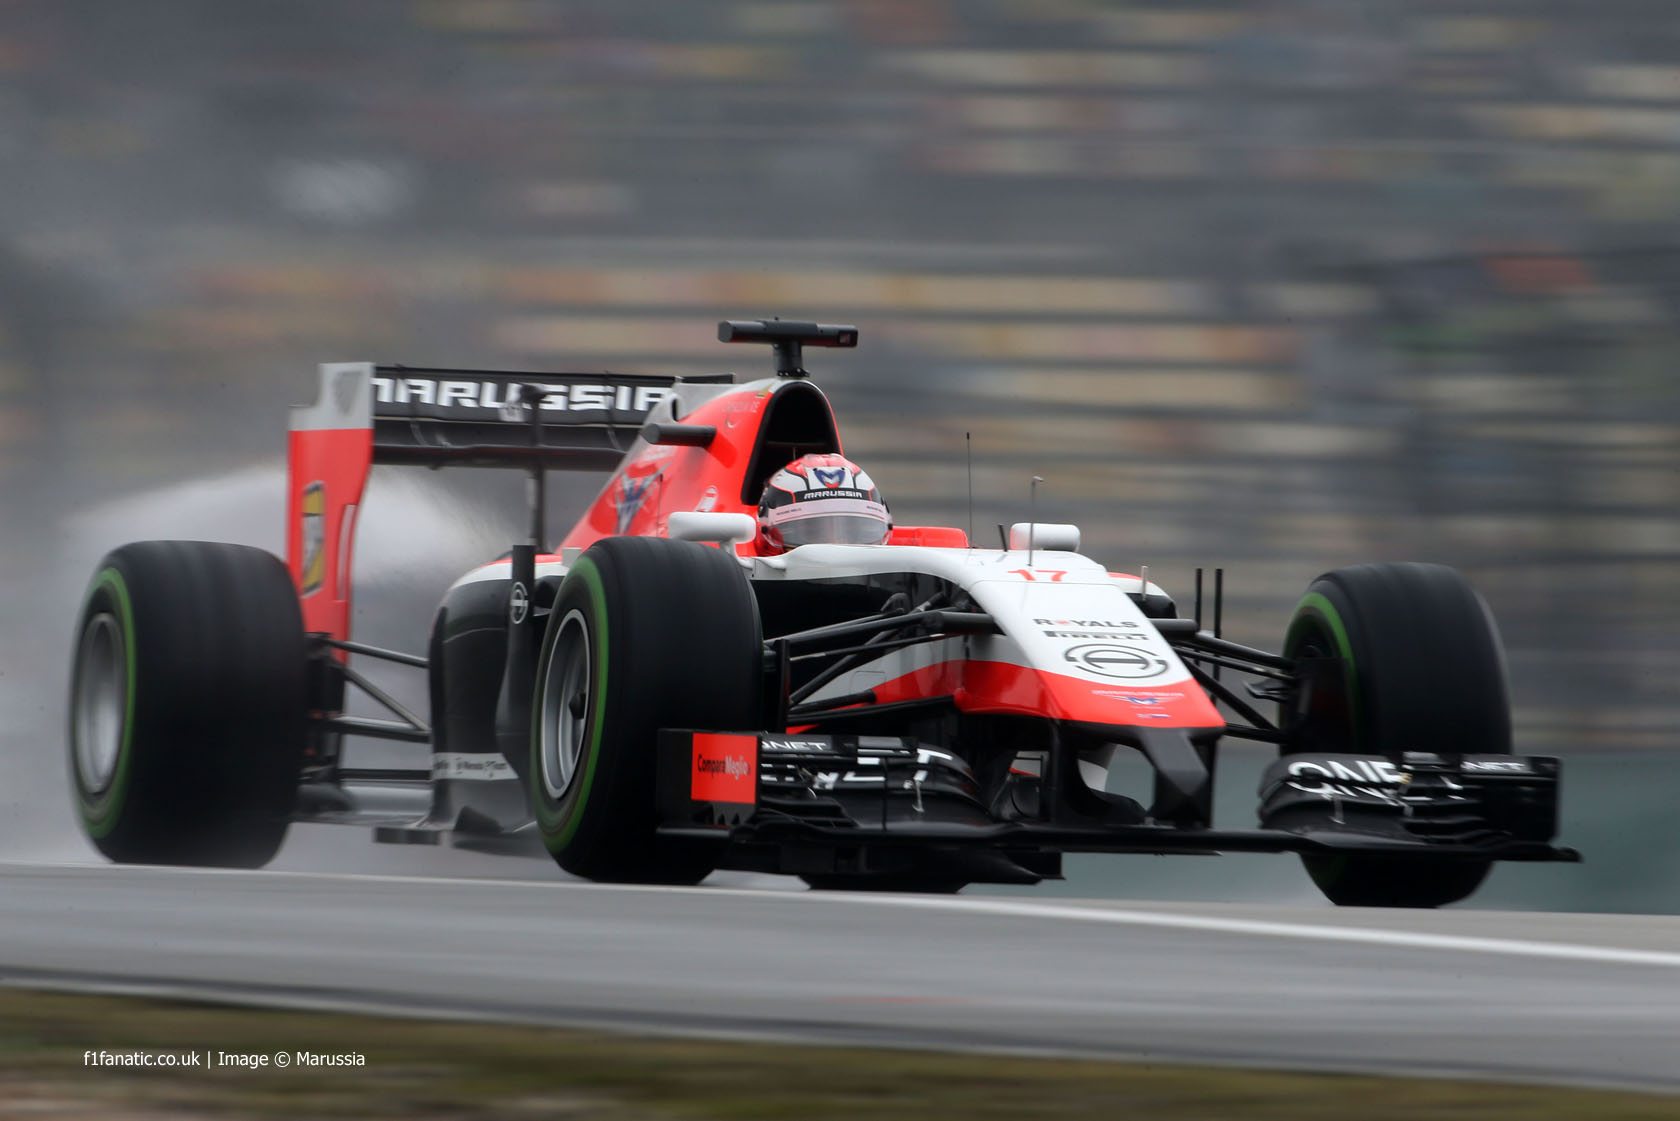 Jules Bianchi, Marussia, Shanghai International Circuit, 2014